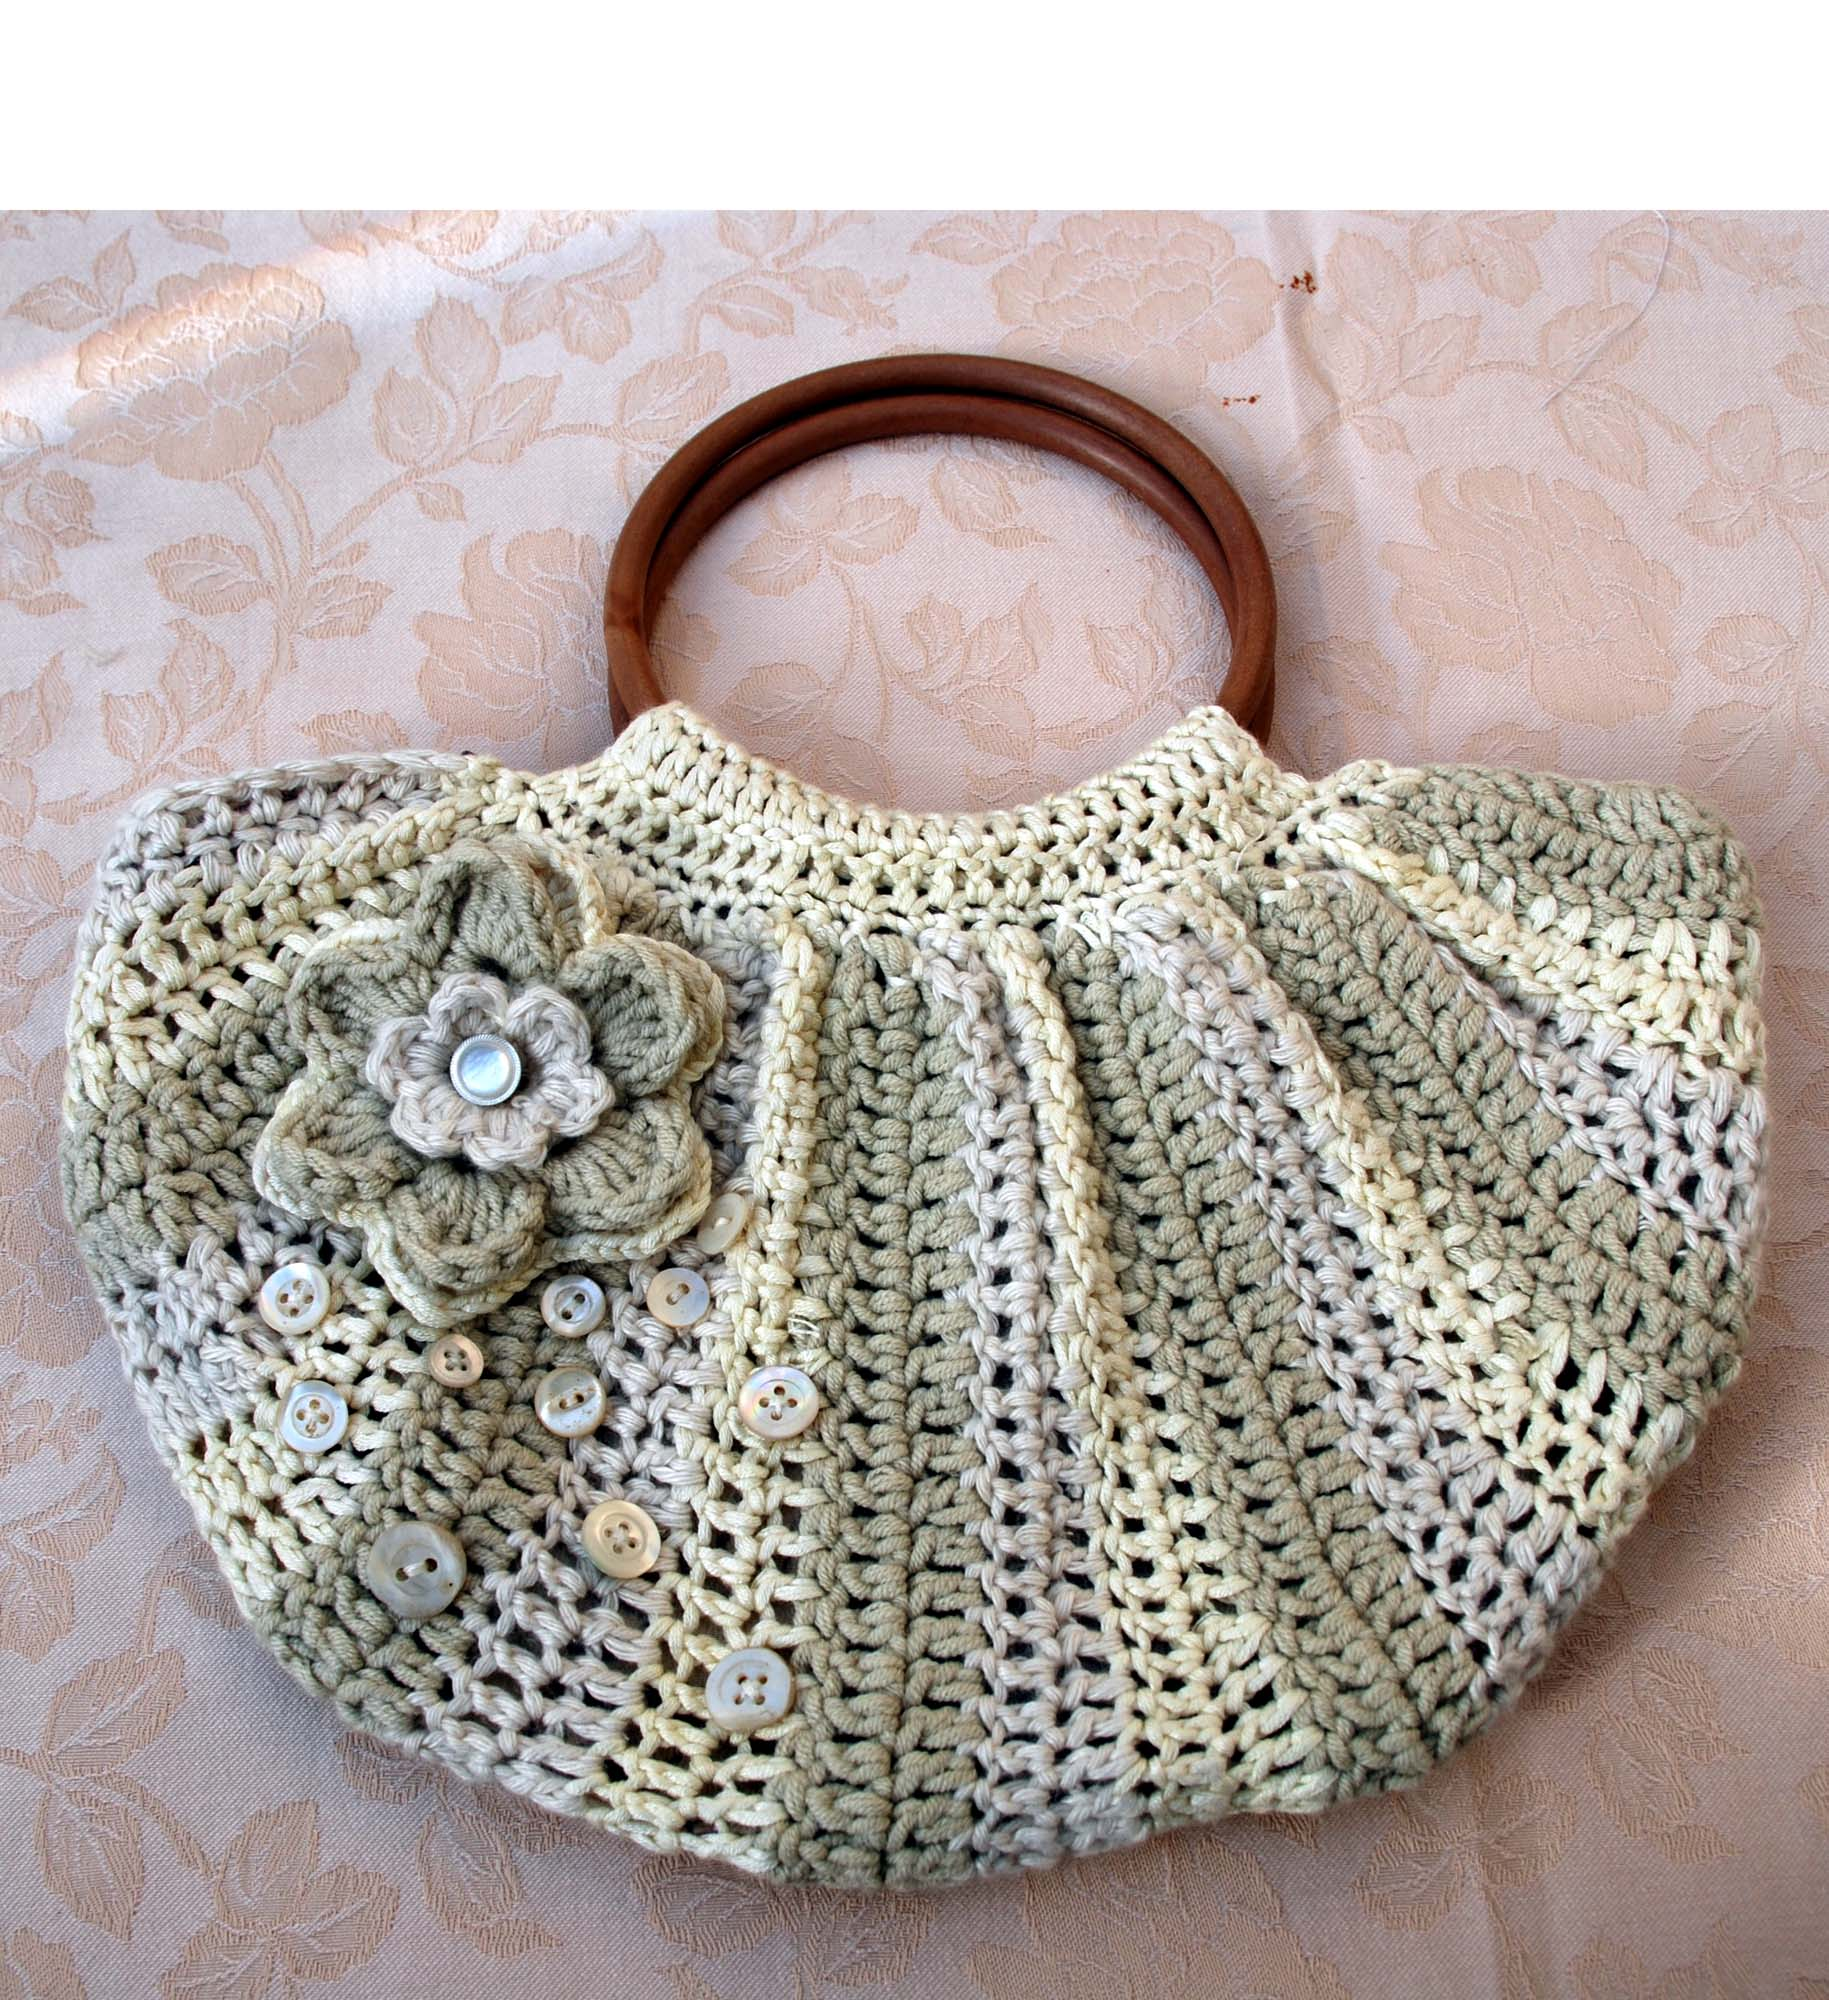 Crocheting Purses : Pretty crochet bag with silk and pearl buttons